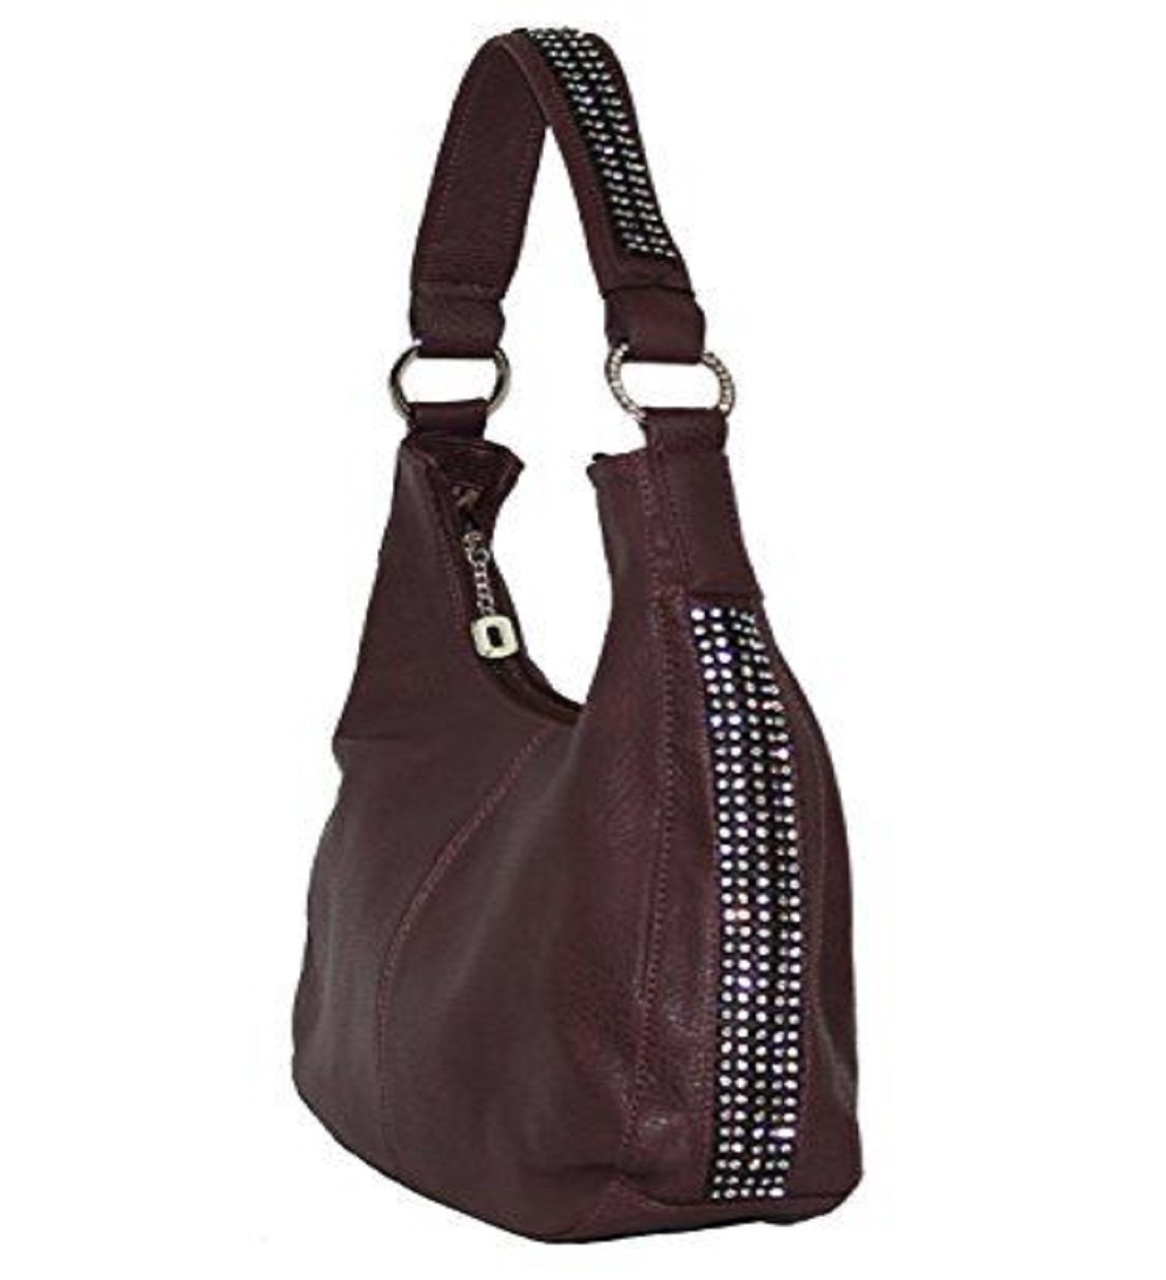 """Jenny"" Women's Wine Rhinestone Concealed Hobo Purse Handbag has an actual Holster that means no printing on your purse. No printing with this included gun holster for your leather concealed handbag."